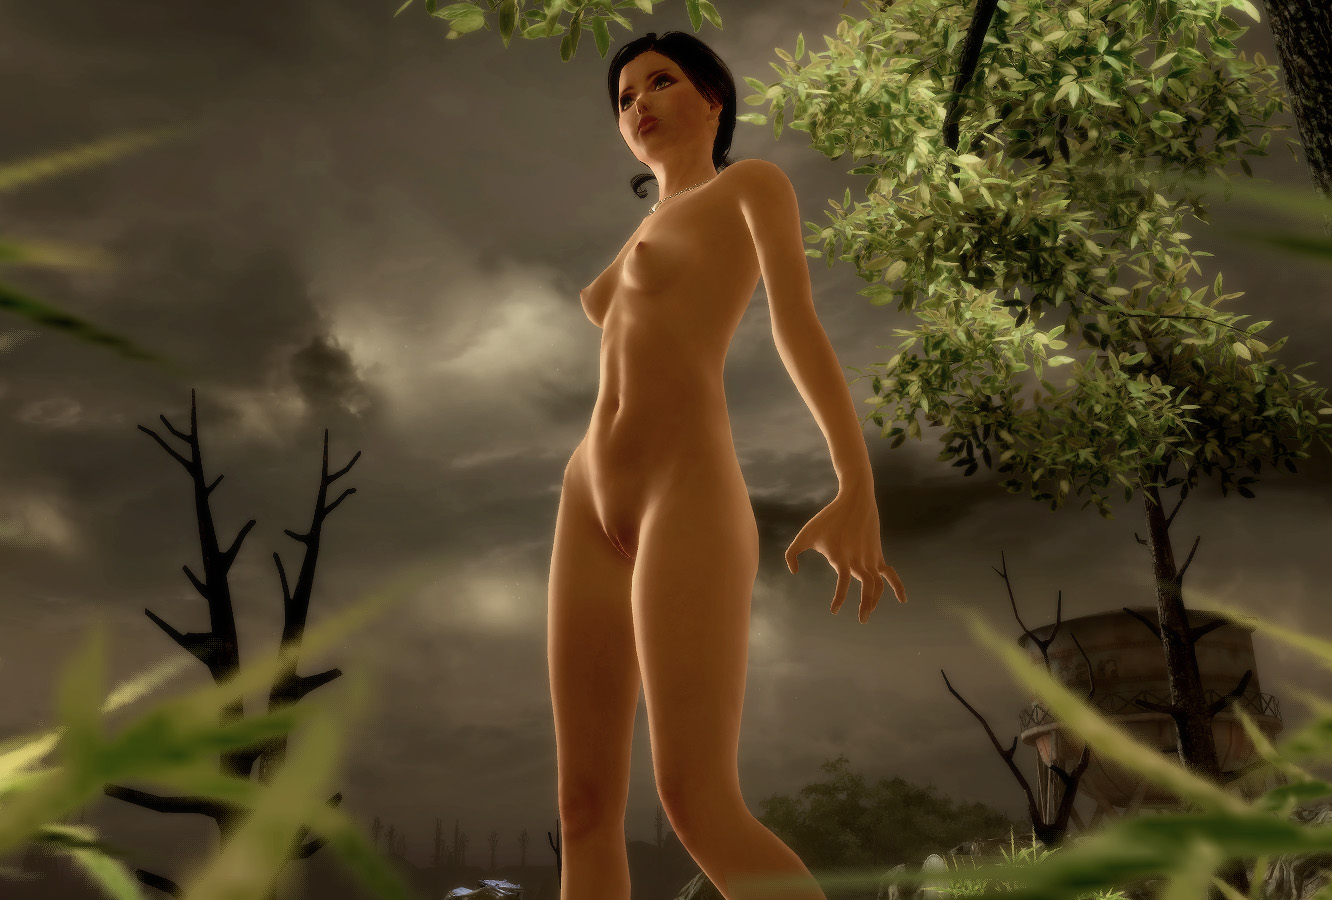 Naked chick game